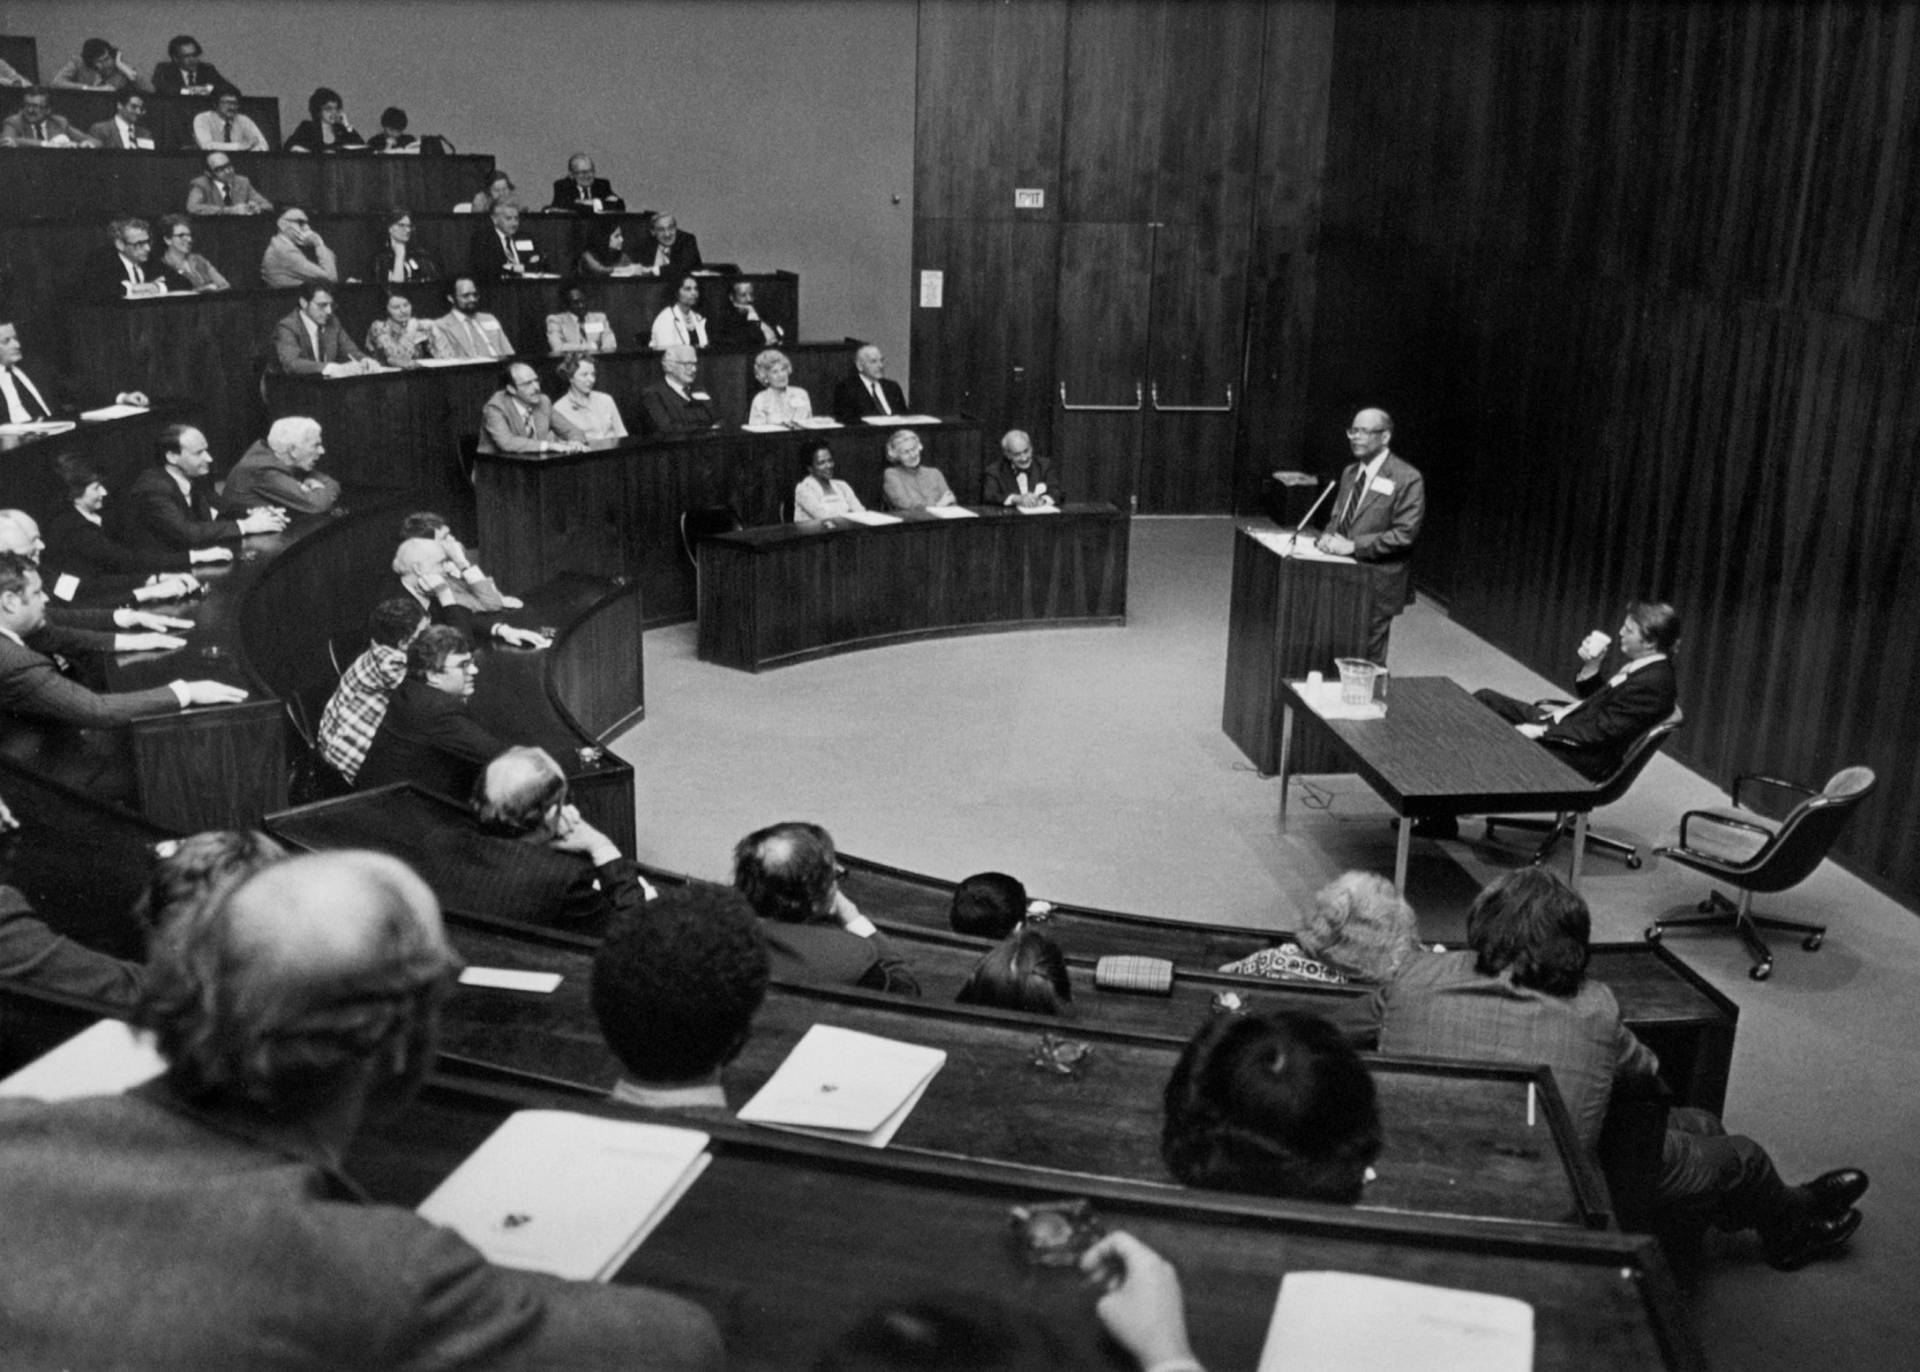 Sir Arthur Lewis giving lecture in auditorium at the Woodrow Wilson School in 1970s